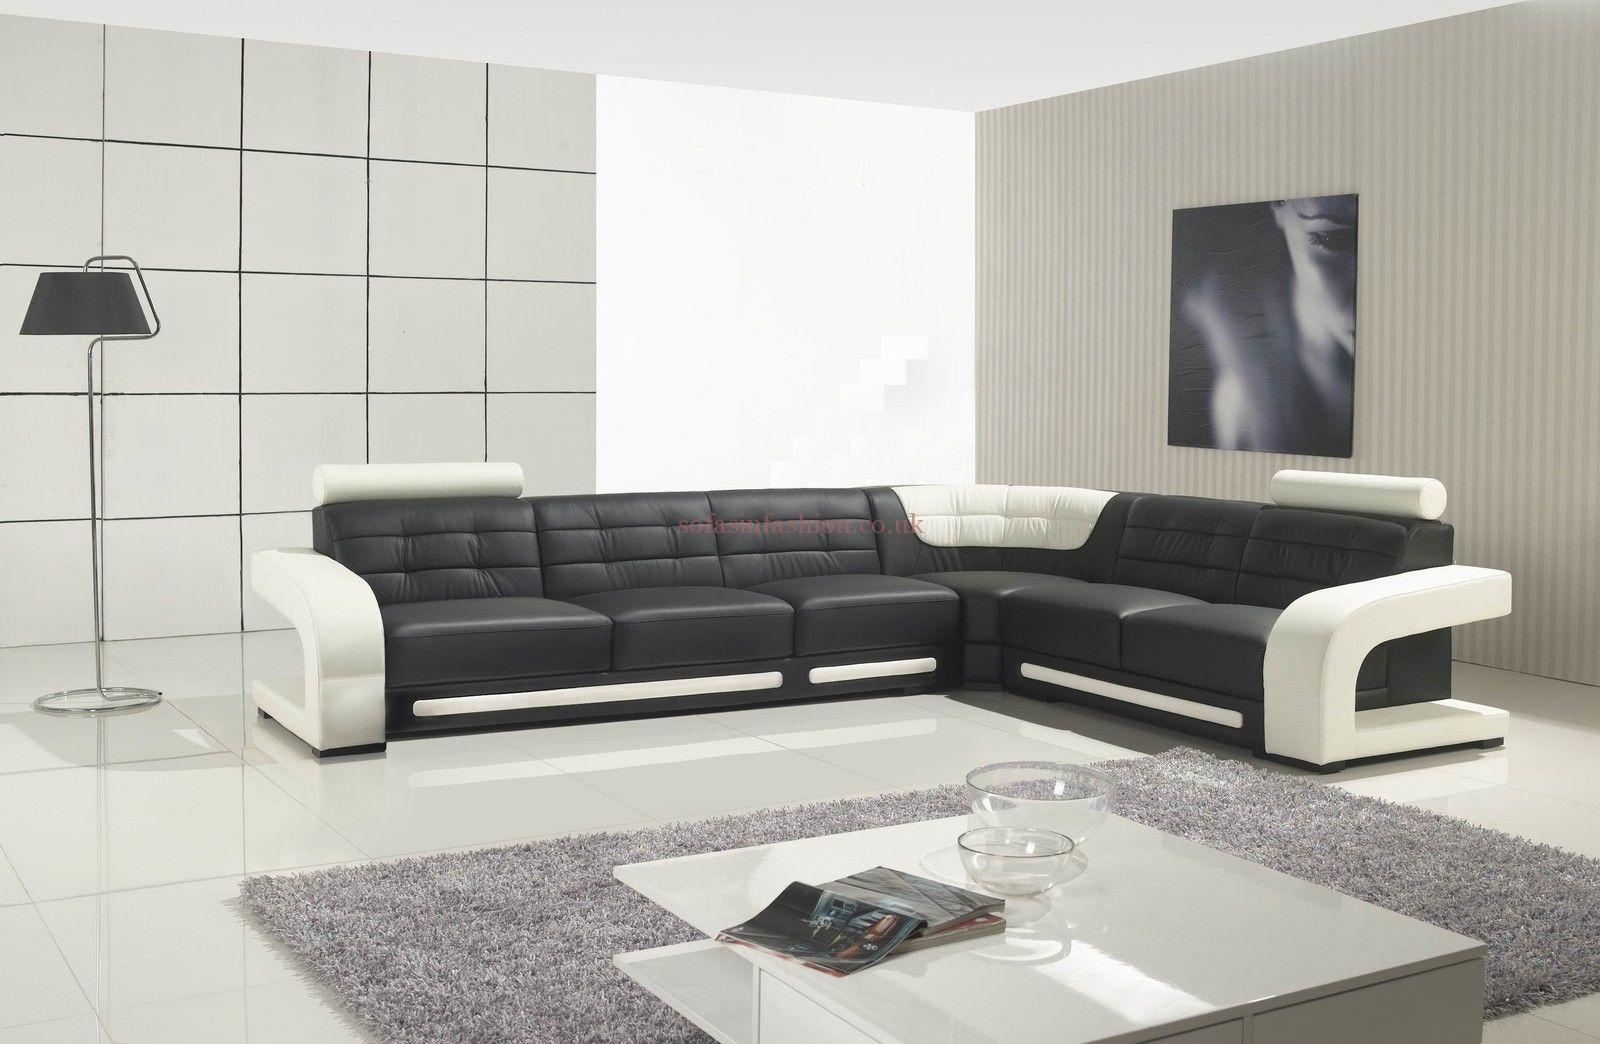 Best Leather Corner Sofas With Leather Corner Sofa Black White In White Leather Corner Sofas (Image 1 of 10)